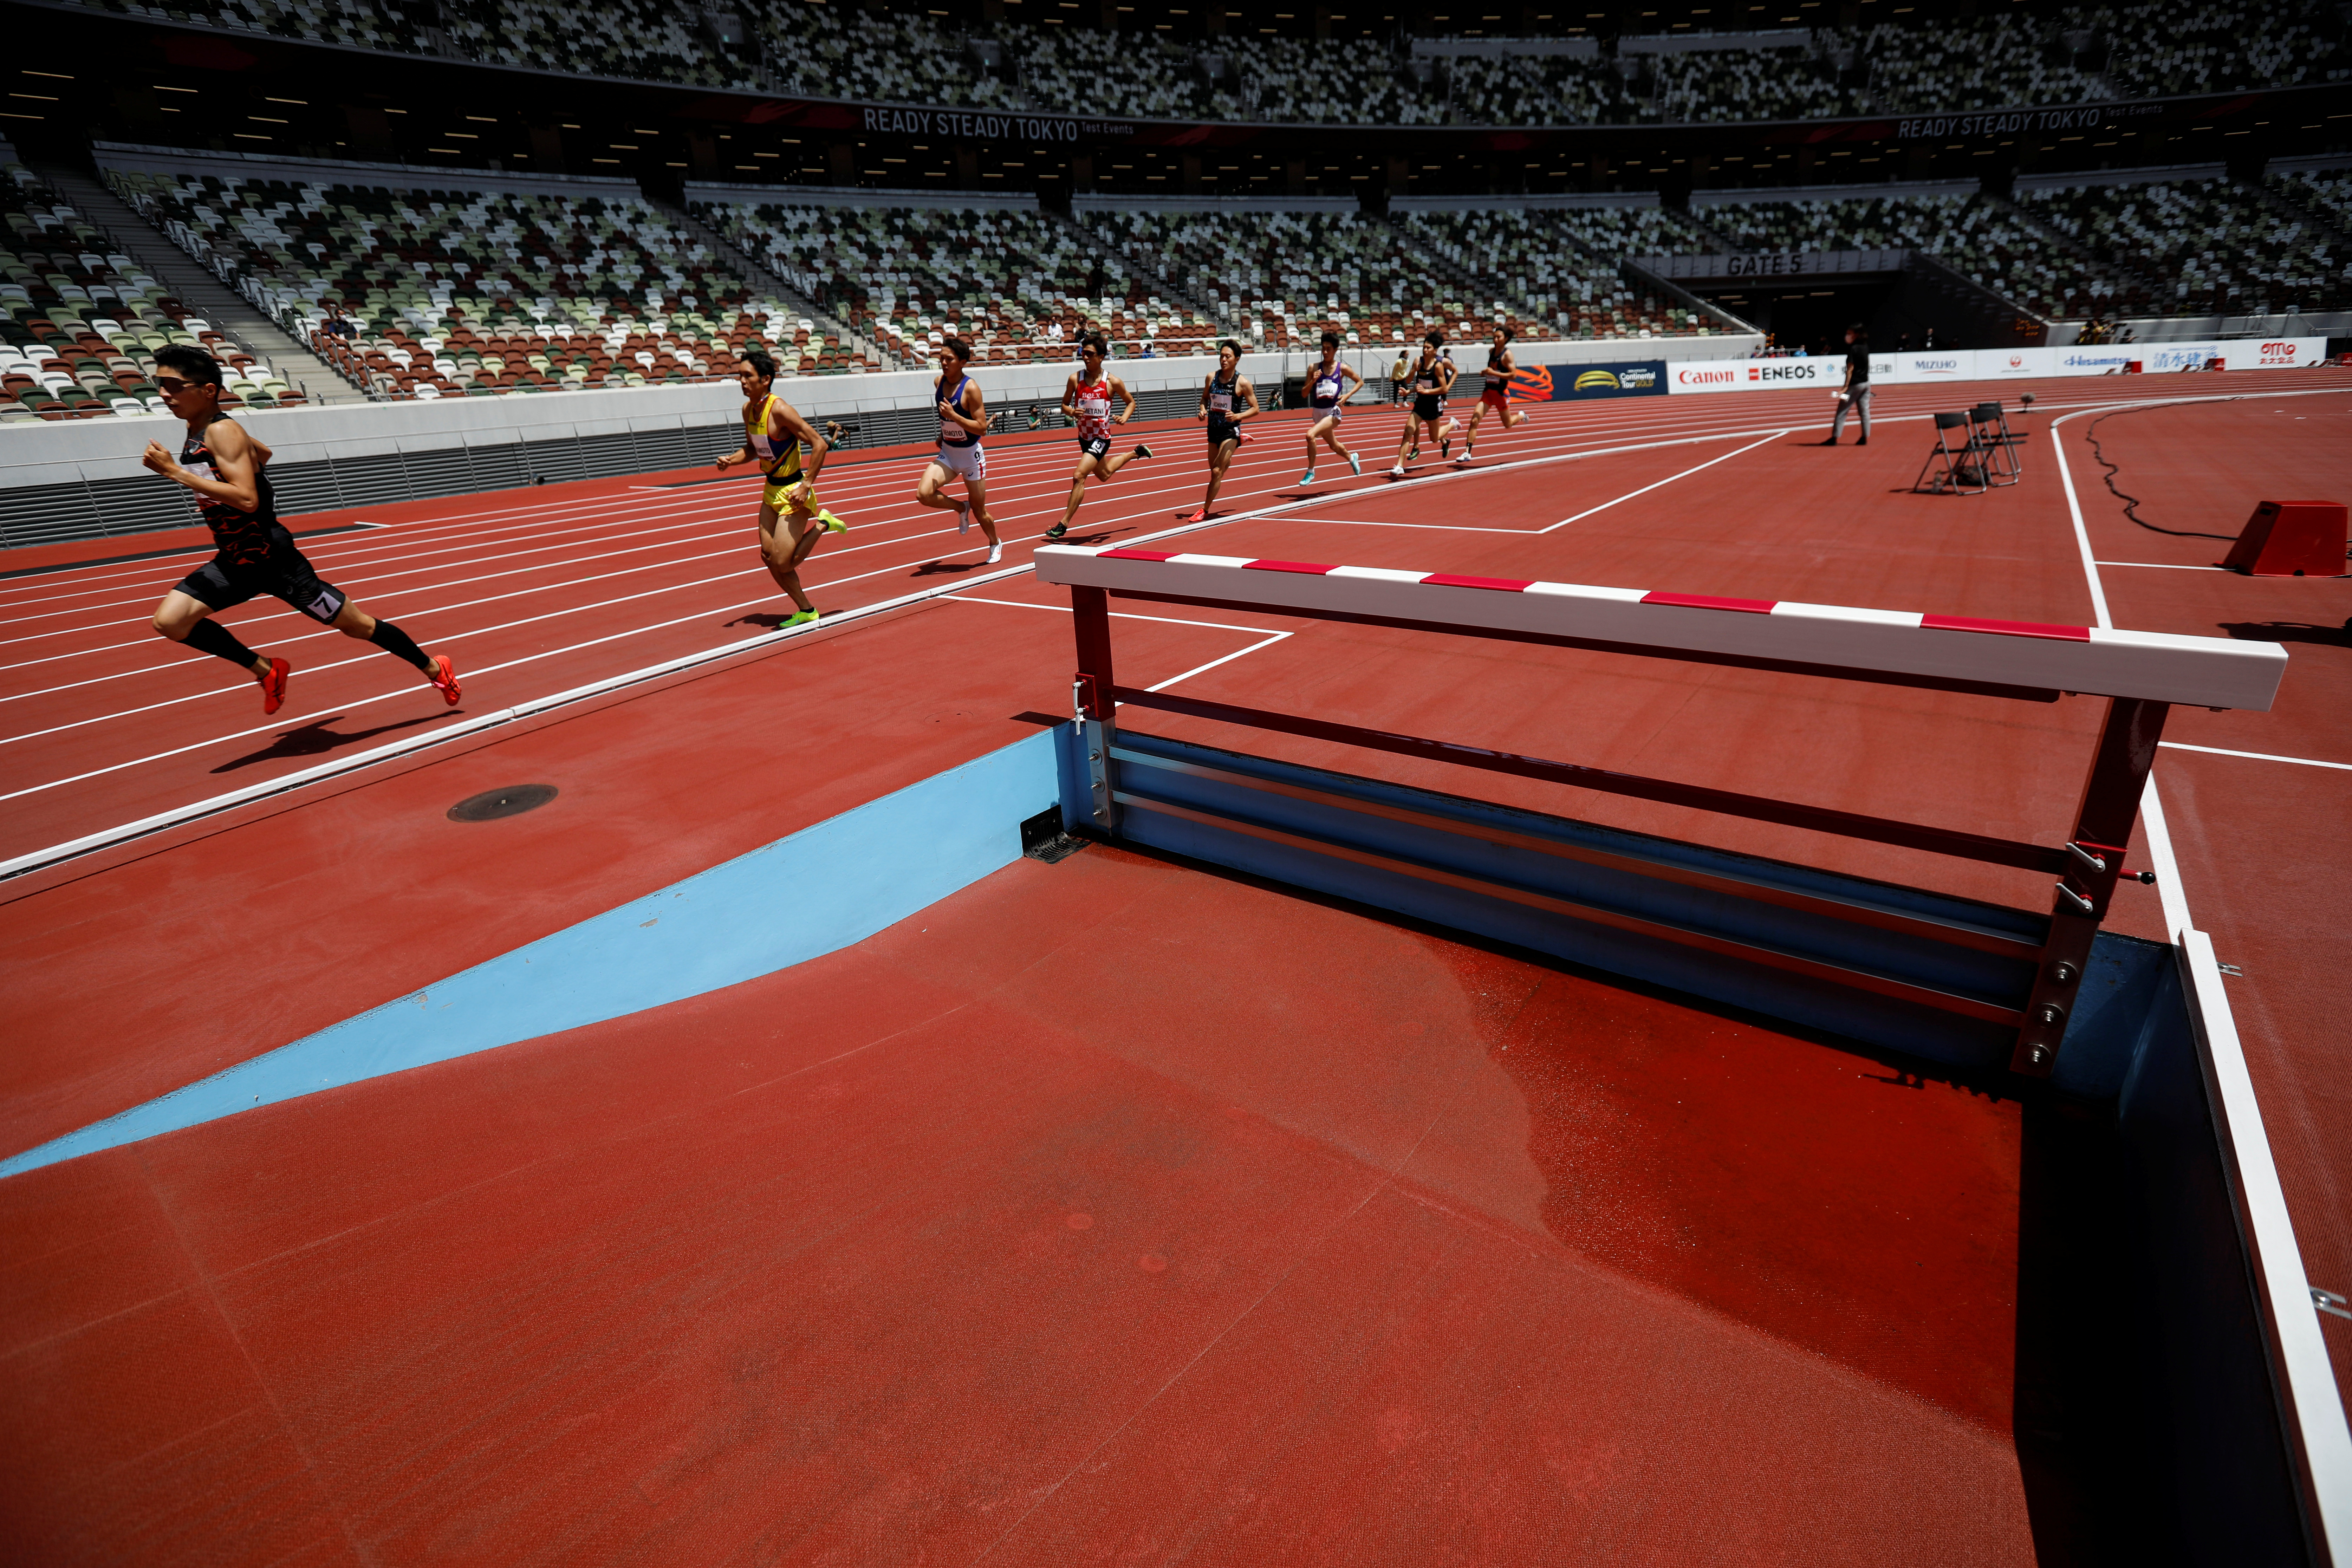 Olympics - Tokyo 2020 Olympic Games Test Event - Athletics - Olympic Stadium, Tokyo, Japan - May 9, 2021.   Japan's Daichi Setoguchi (7) runs ahead of others during the men's 800m final at the morning session of the Athletics test event. REUTERS/Issei Kato